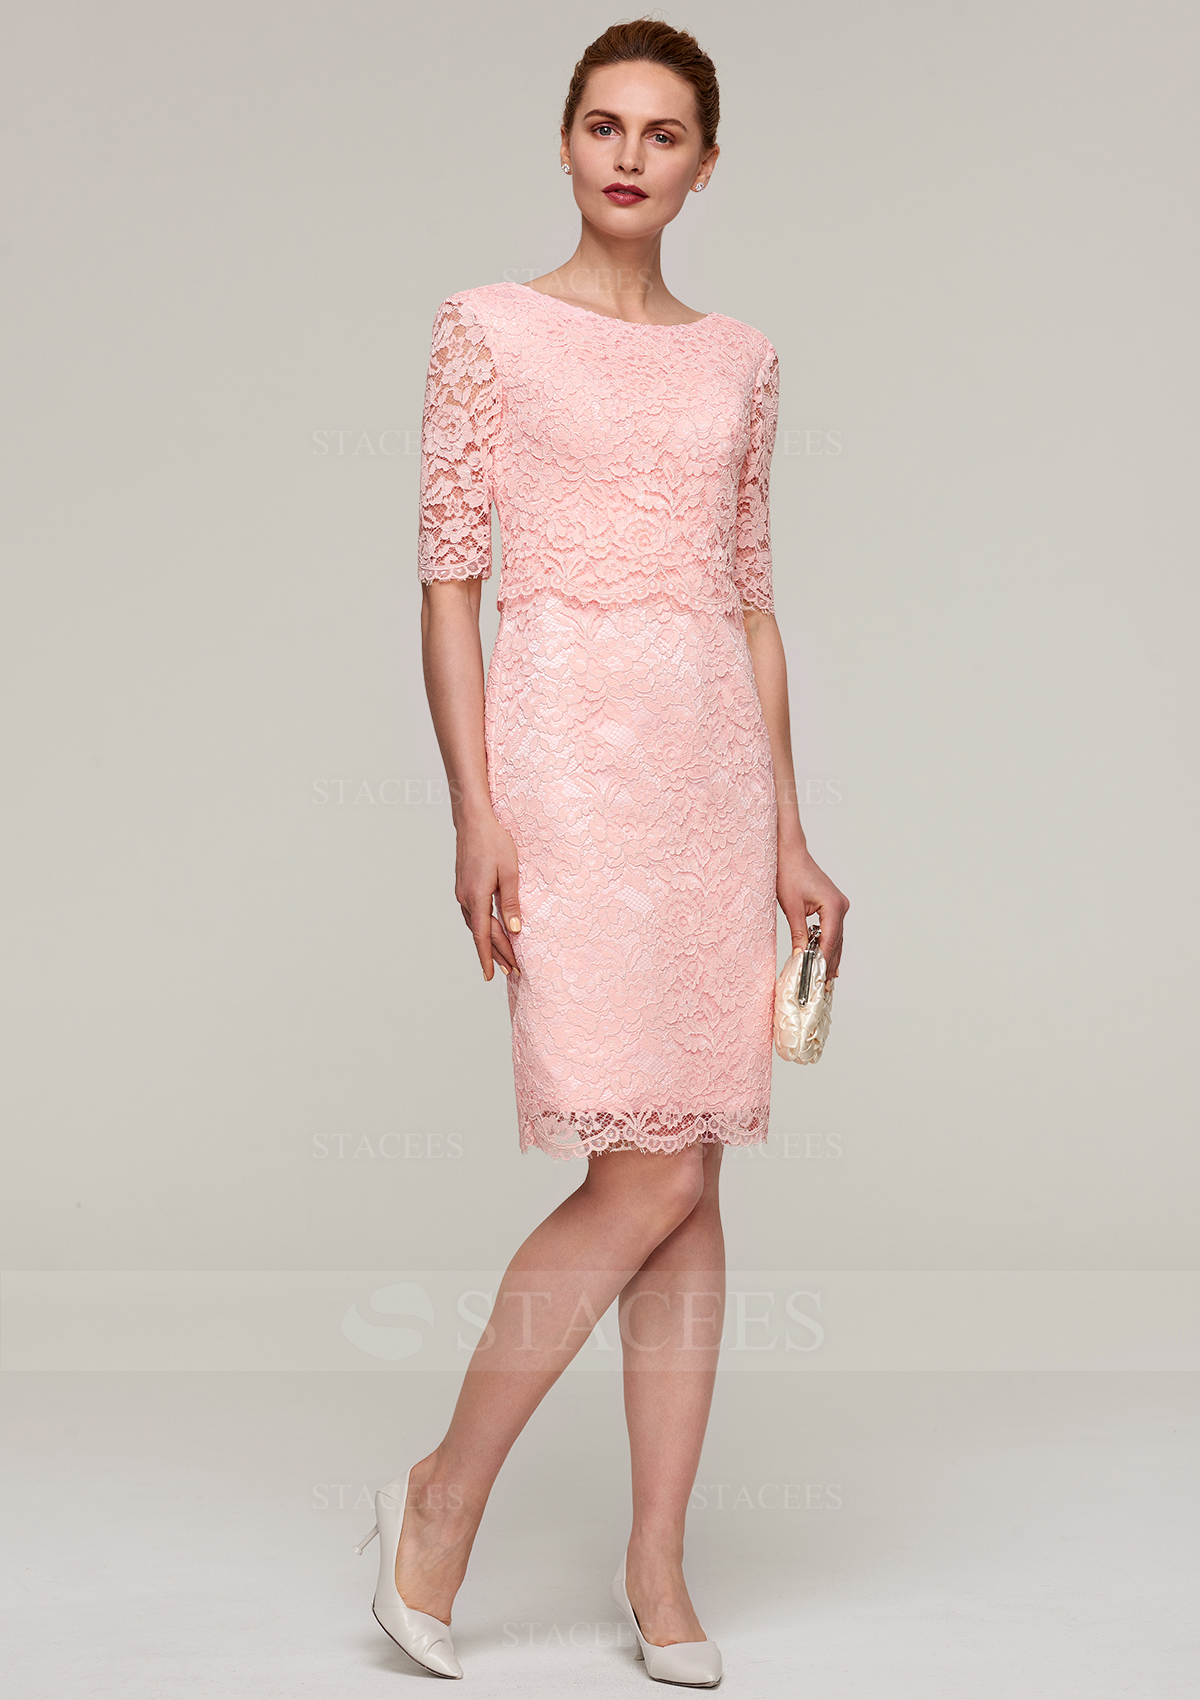 b5e37aed049 Sheath Column Bateau Half Sleeve Knee-Length Lace Mother of the ...